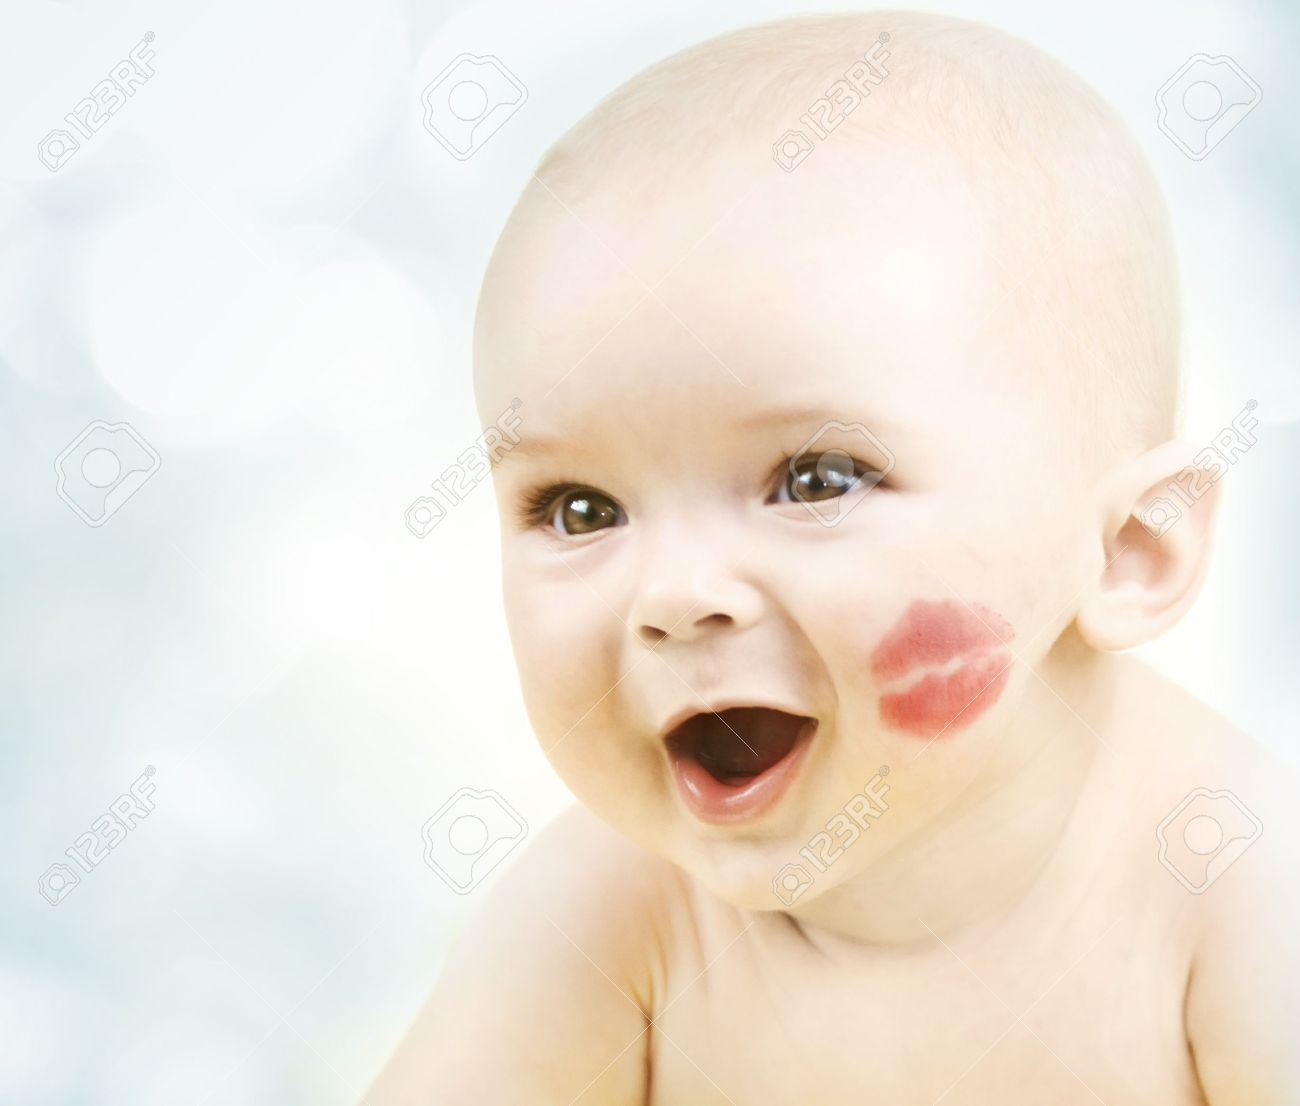 Happy smiling little baby with kiss - 7365285